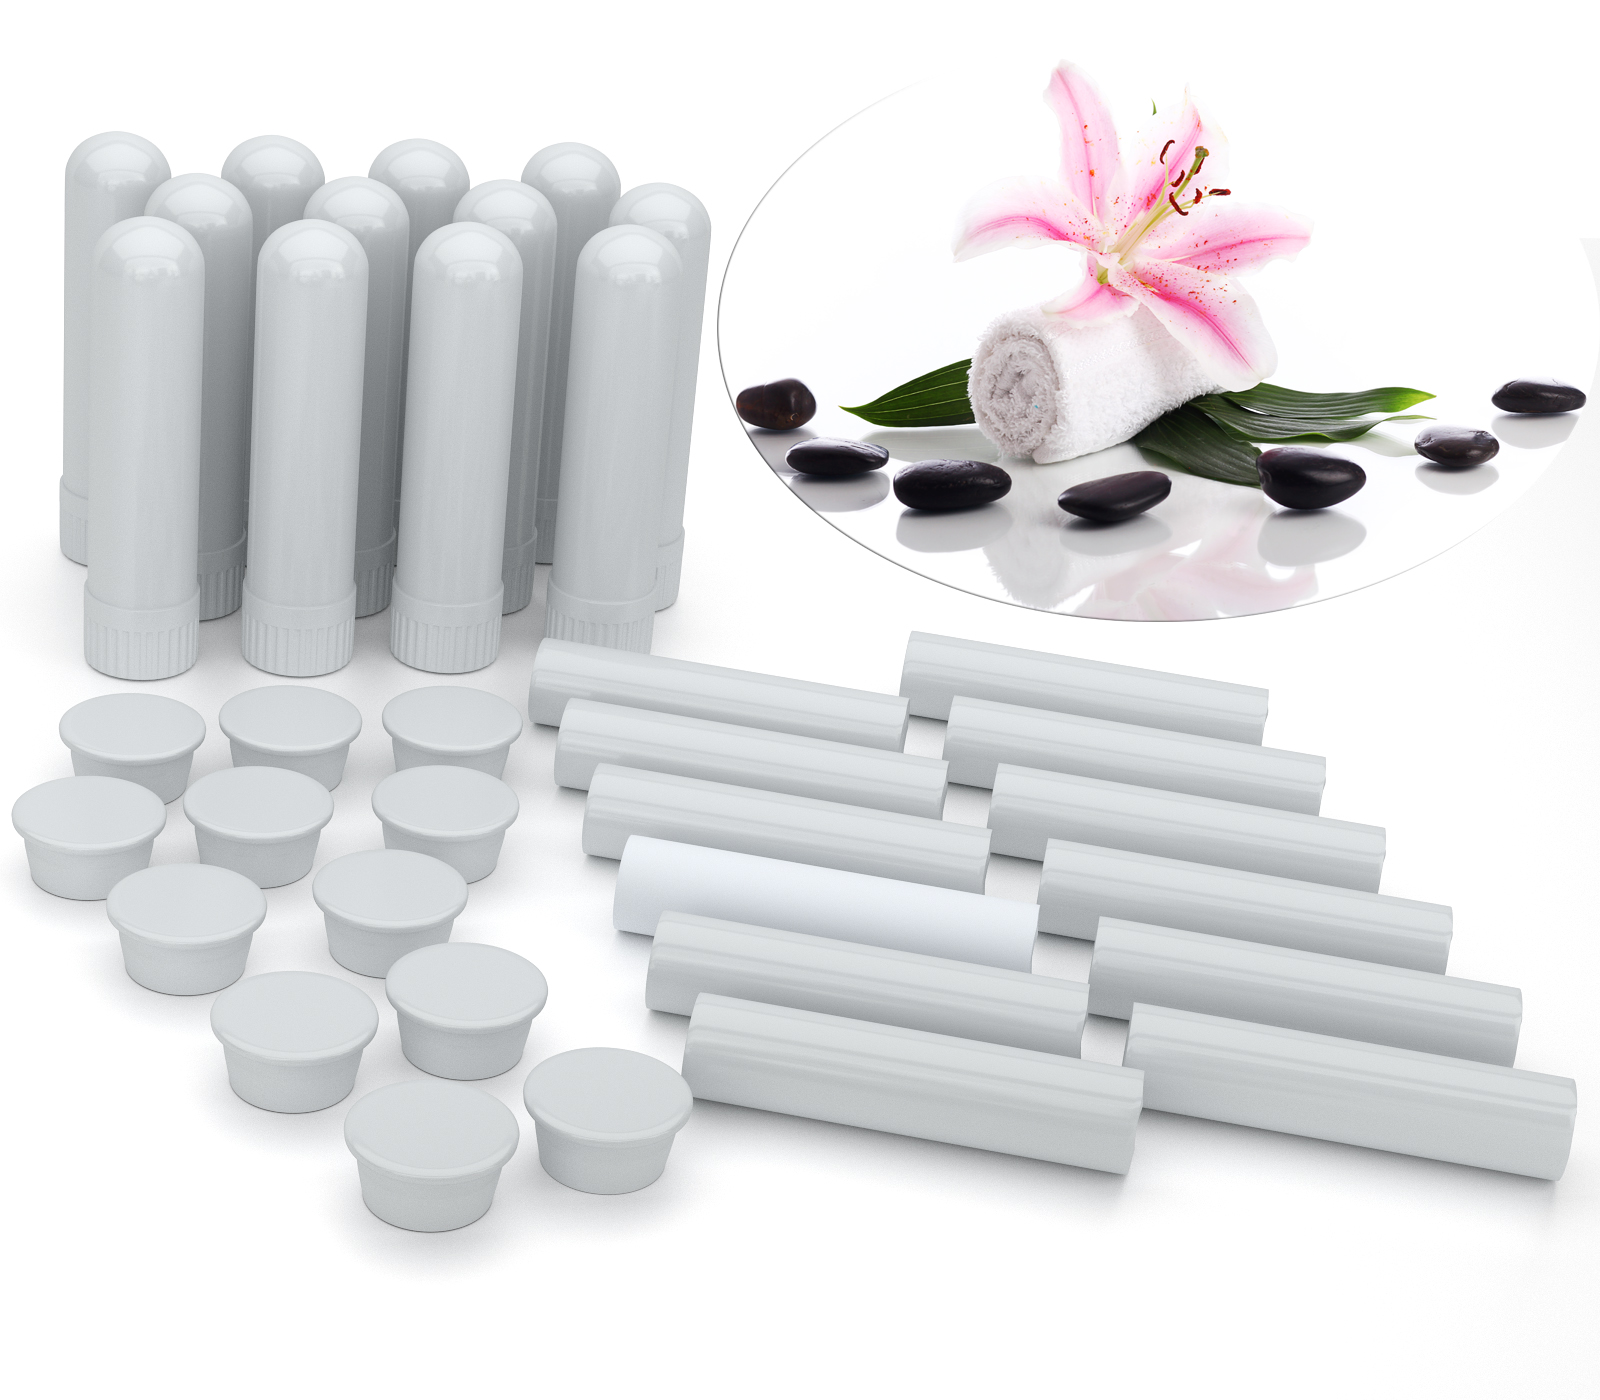 B011A1HRK8 - Essential Oil Aromatherapy Blank Nasal Inhaler Tubes (24 Complete Sticks) 3